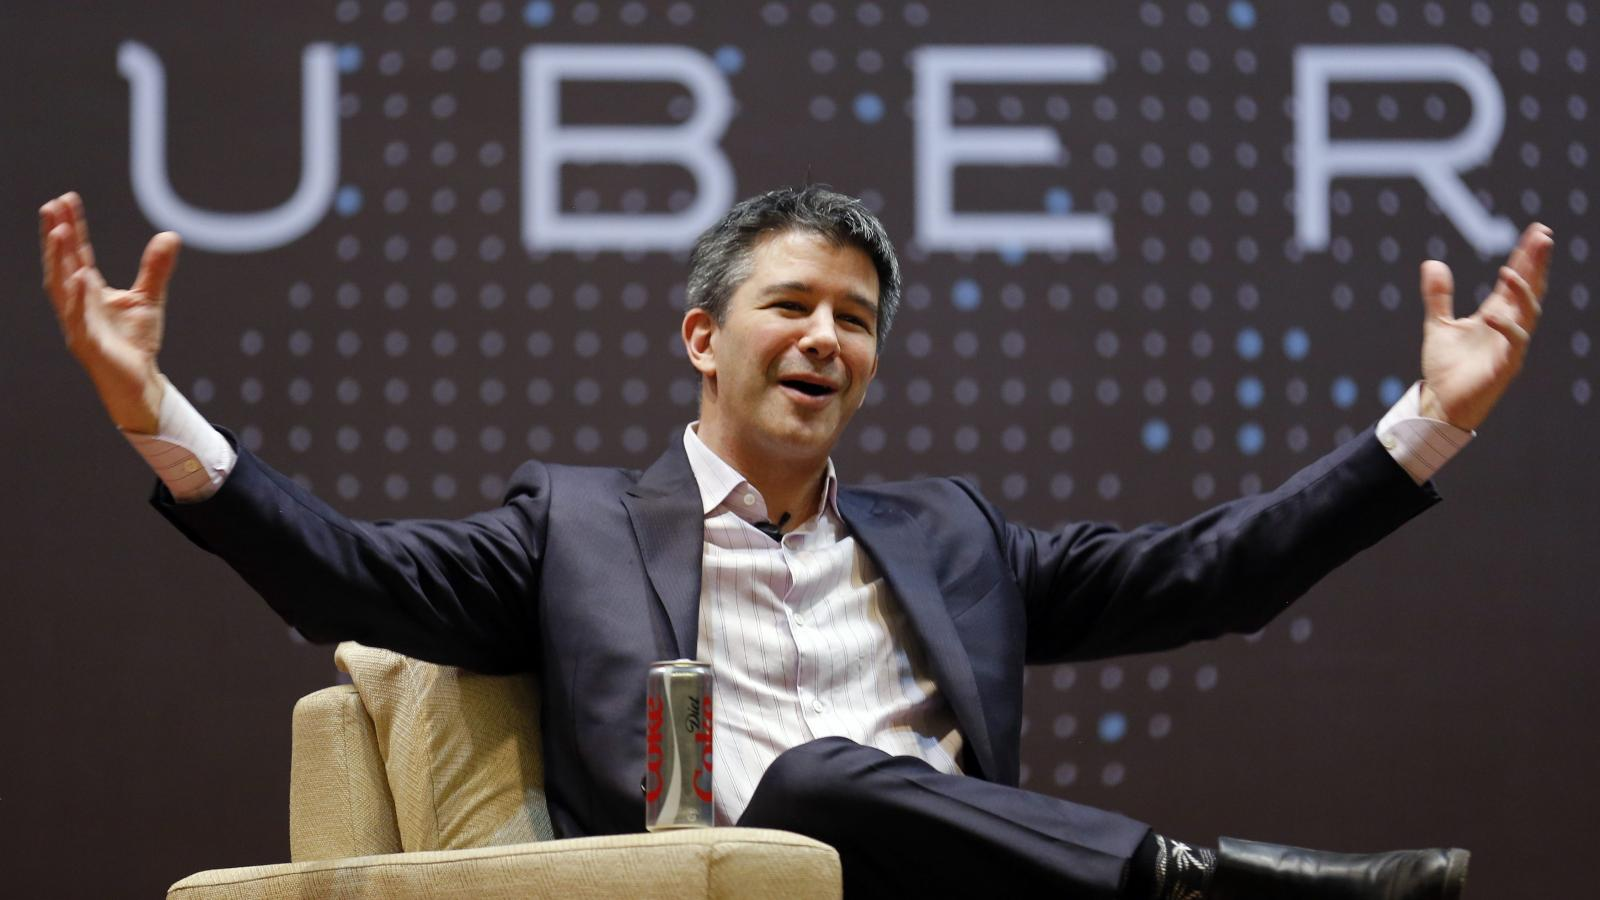 How Uber got to its $90 billion IPO and changed transportation